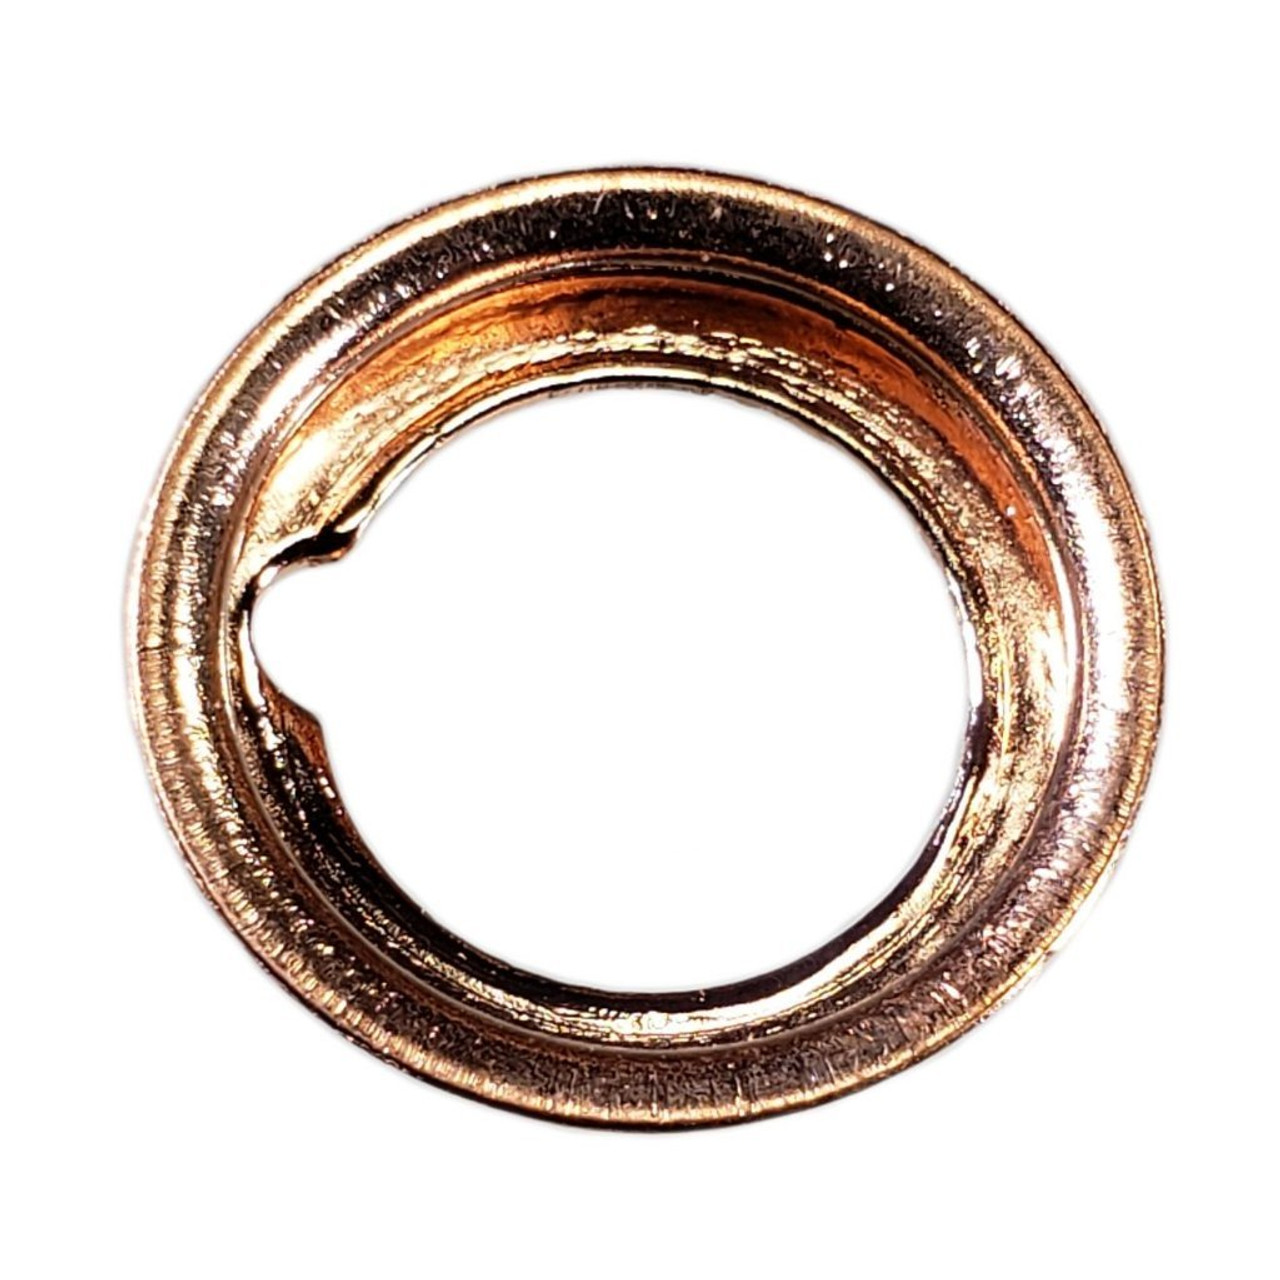 Back view of M12 Nissan Style Crush Drain Plug Gasket - Interchanges: Dorman 097-134, Nissan 11026-01M00, 11026-01M02, 11026-JA00A , Ford F4XY-6734-A, XF5Z-6734-AA